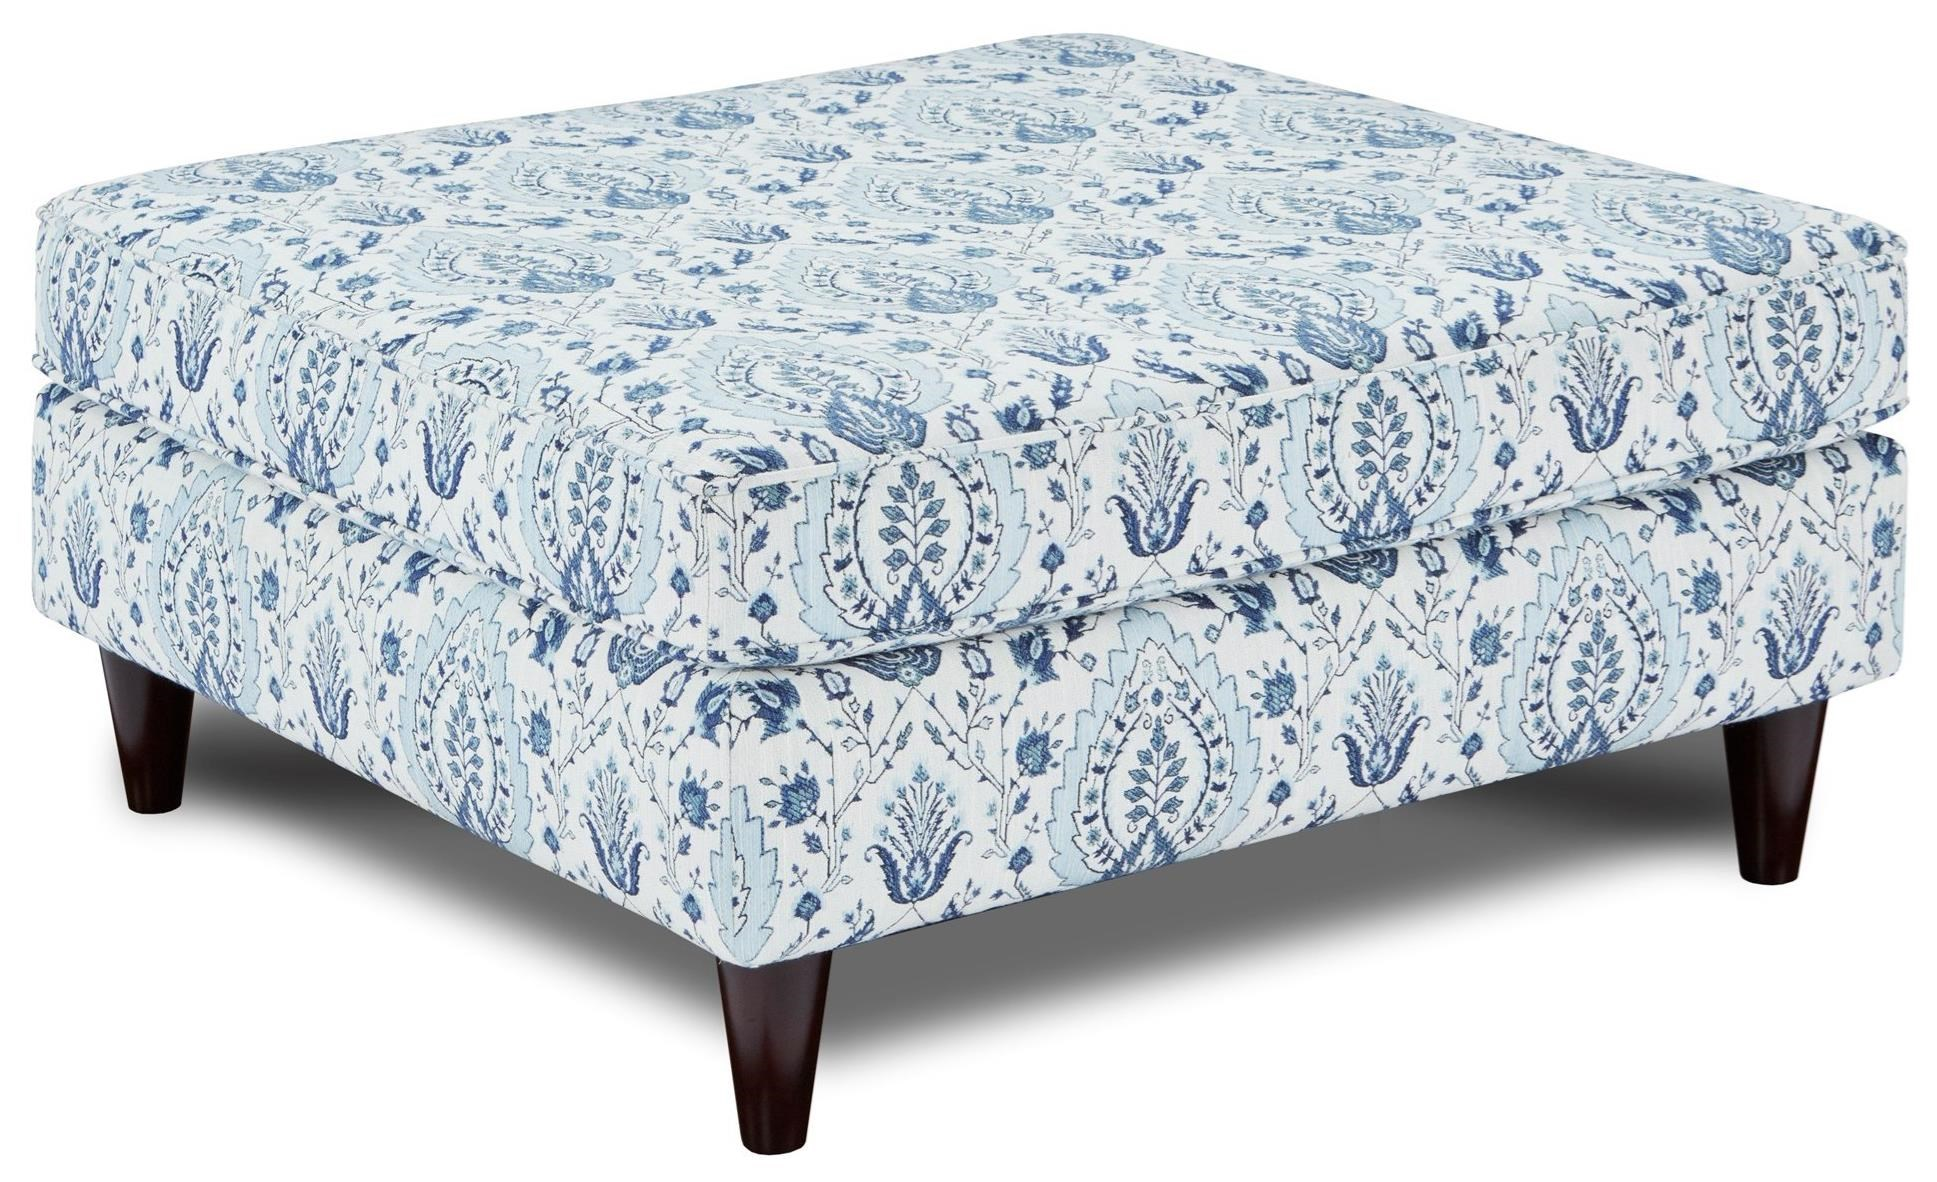 170 Ottoman by Fusion Furniture at Wilson's Furniture